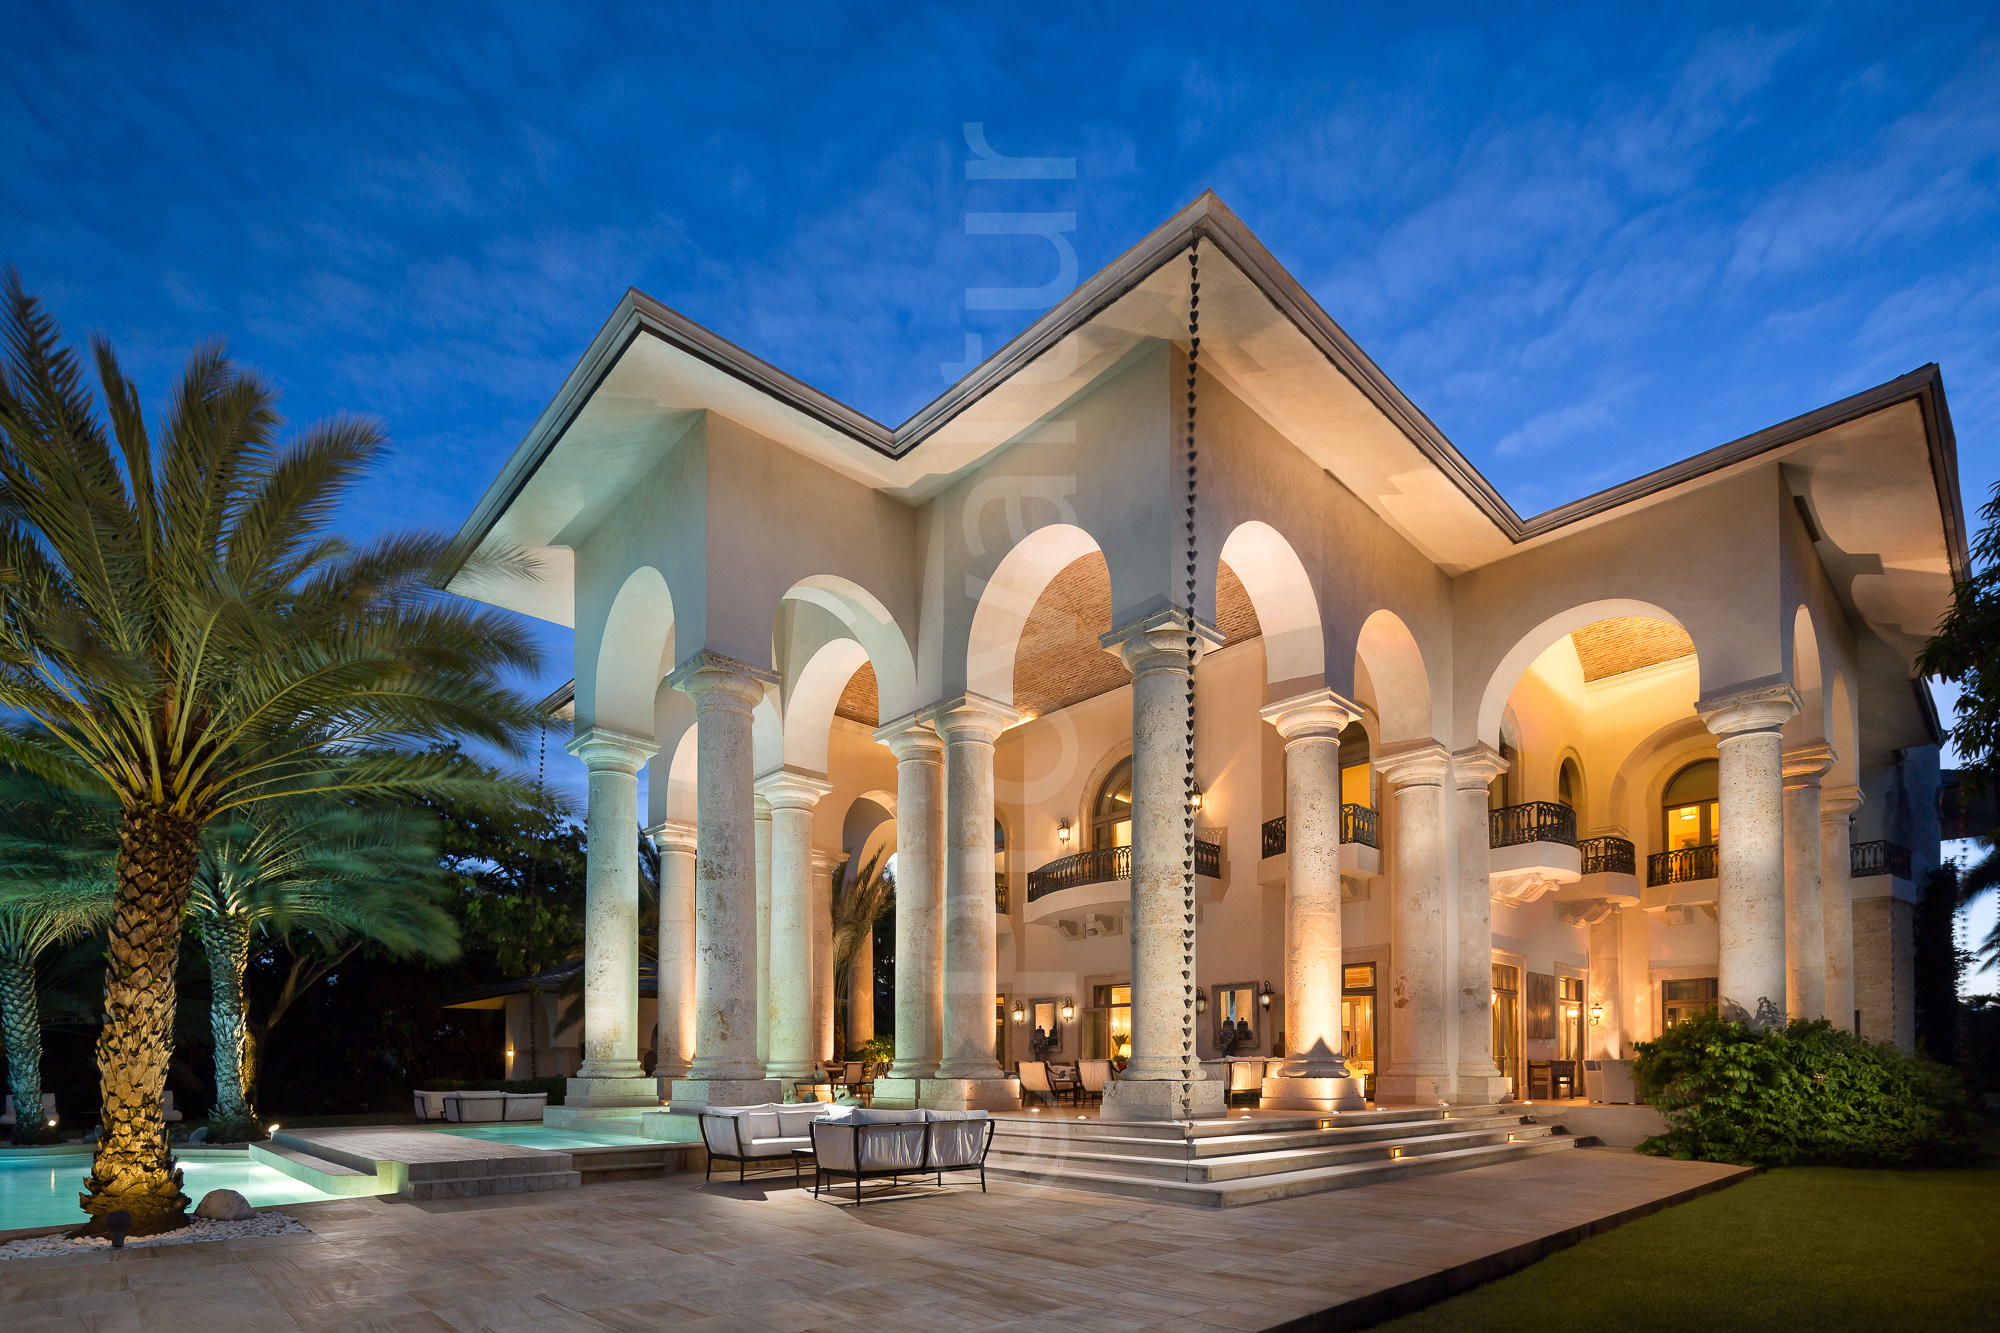 Villa Toscana Villa Toscana A Founder Mansion At Punta Espada Golf Course